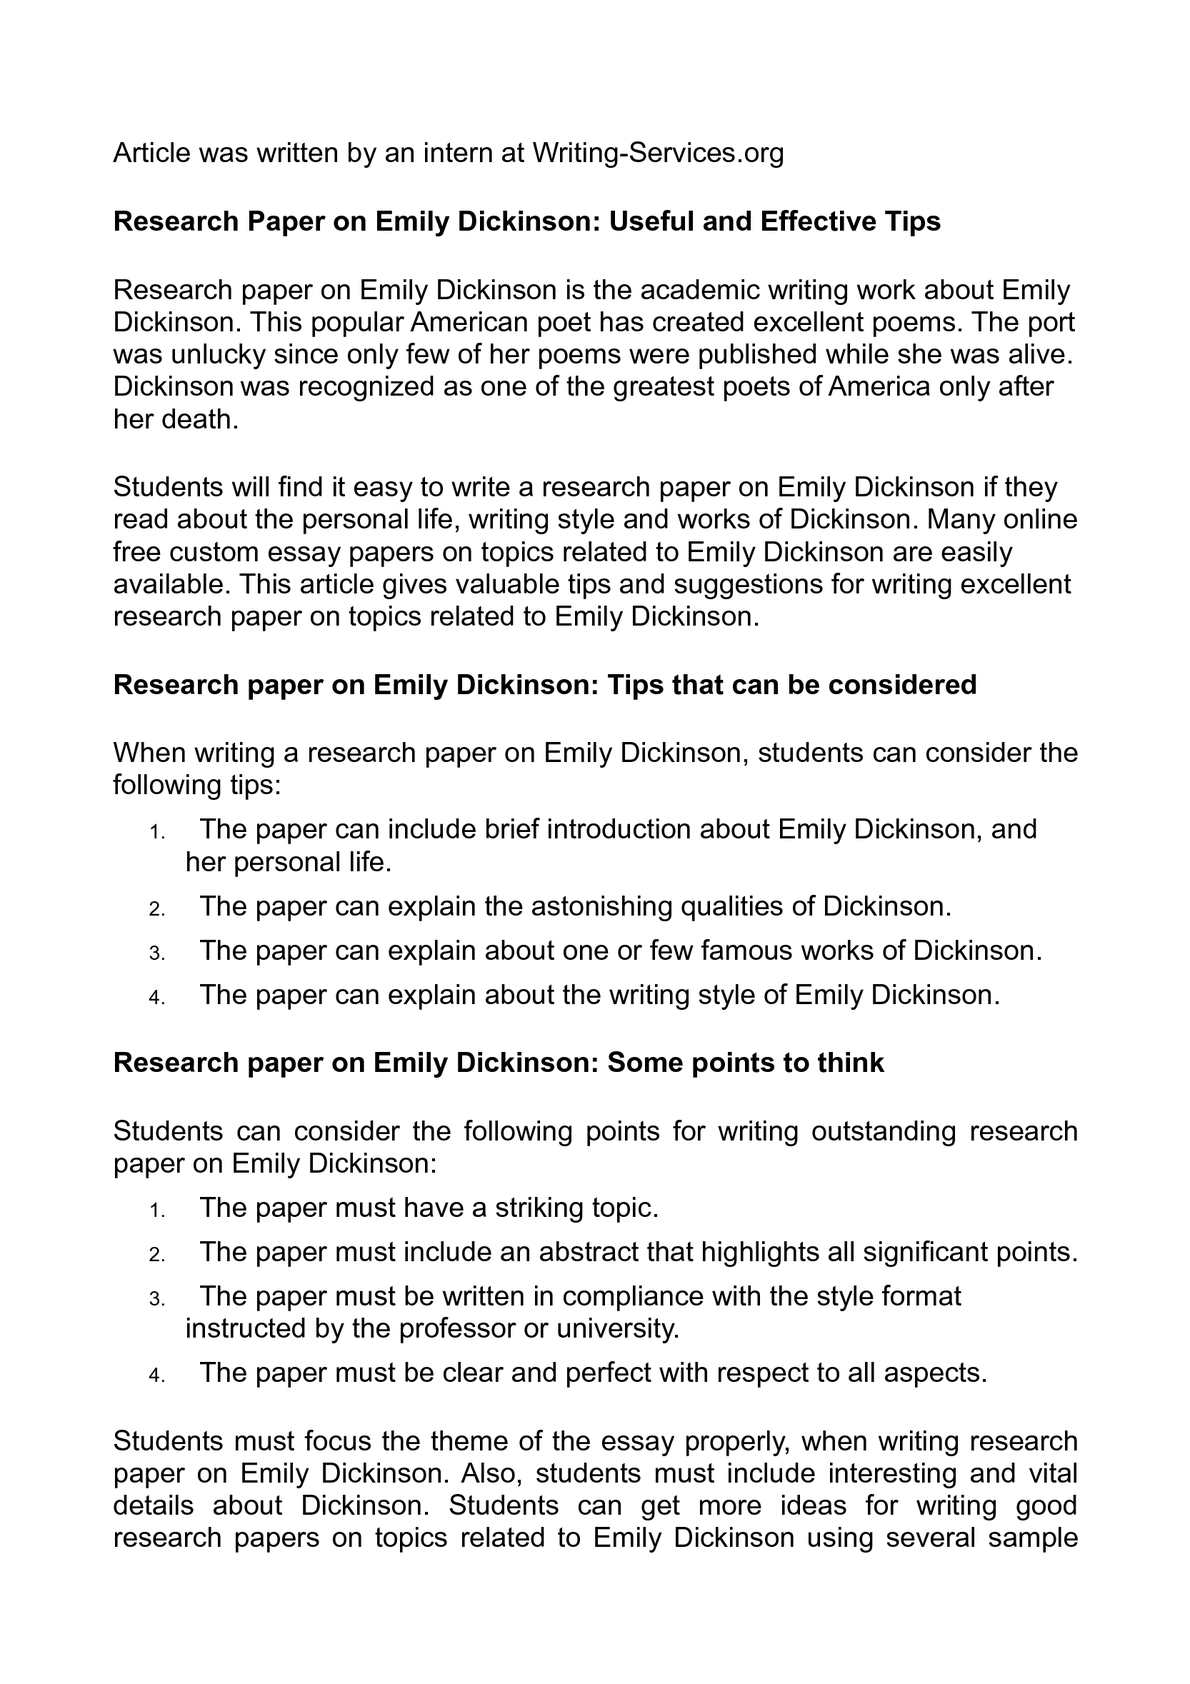 Emily dickinson free research paper homework architects chembur